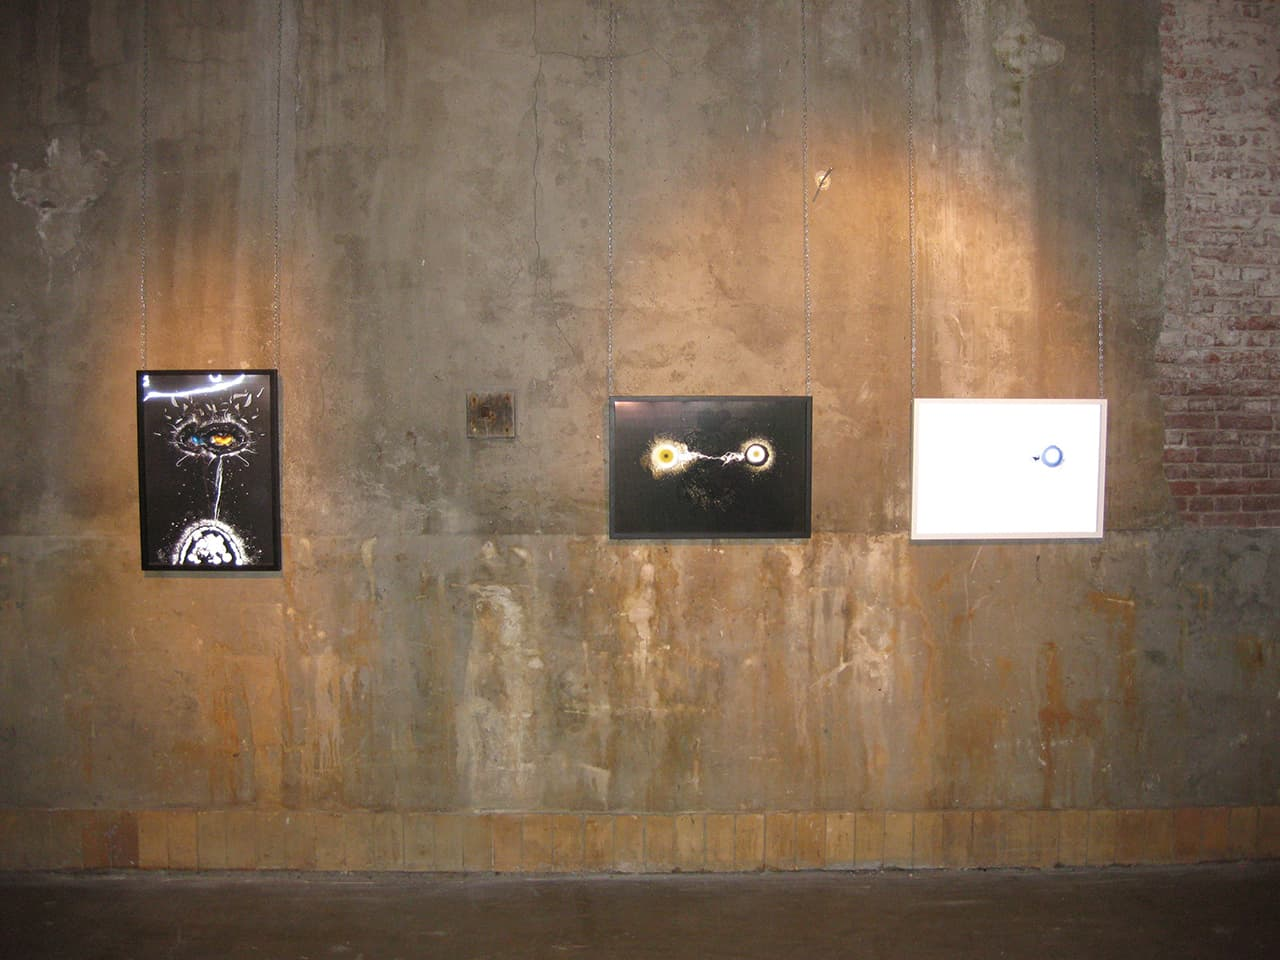 <strong>Transition 5, 2 & 1</strong>, Susan Aldworth, lenticular prints, 65 x 45 cms each. Installation at Scheltema Contemporary Gallery, Leiden, 2010.